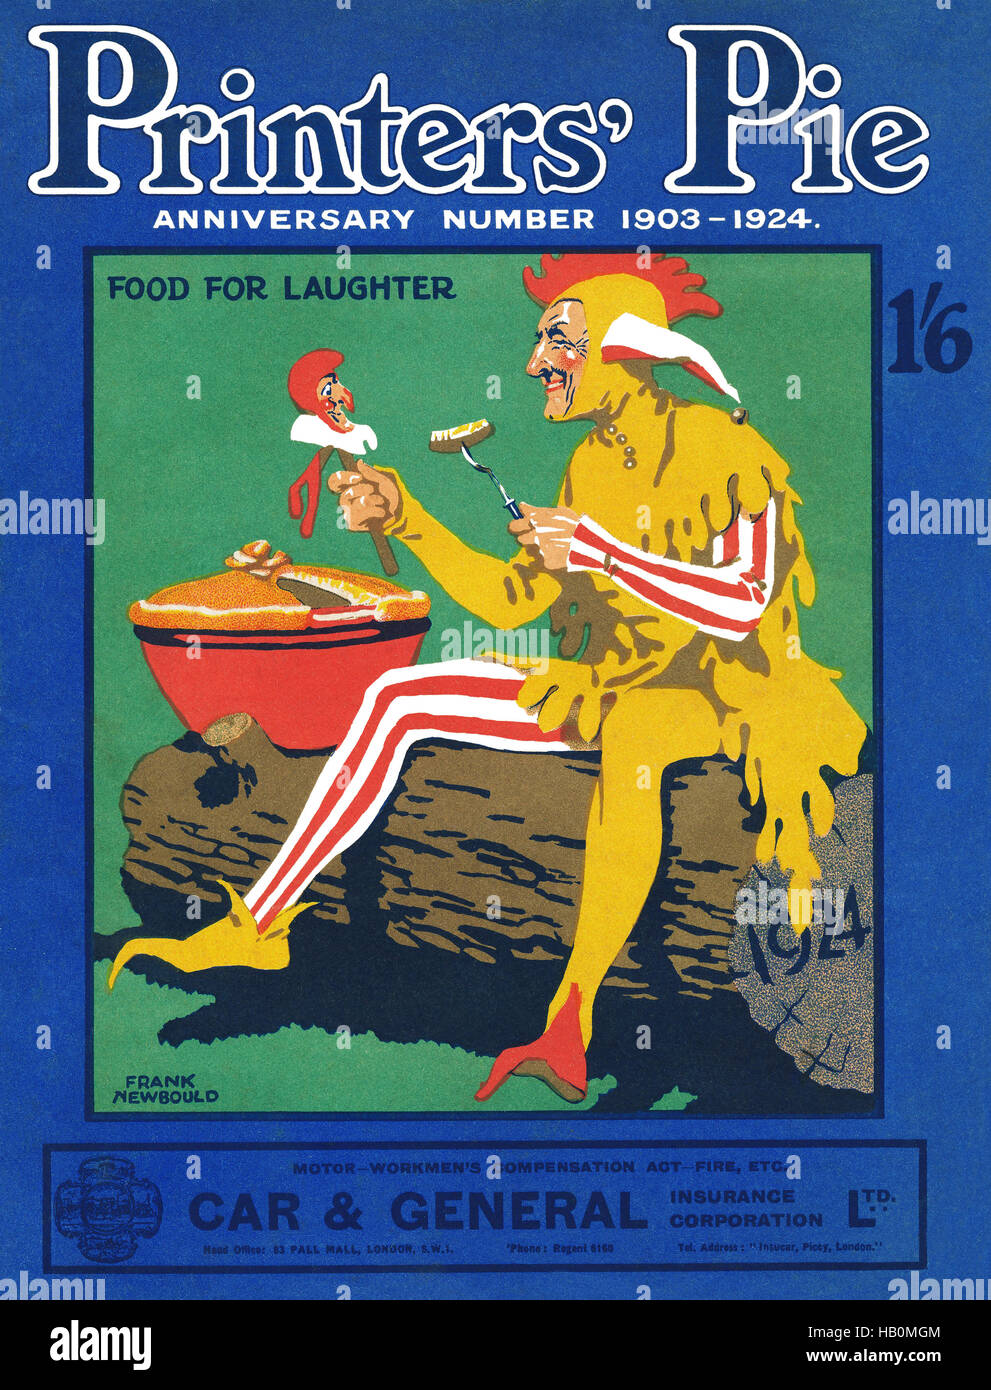 Front cover of a 1924 issue of Printers' Pie humorous magazine with an illustration by Frank Newbould - Stock Image